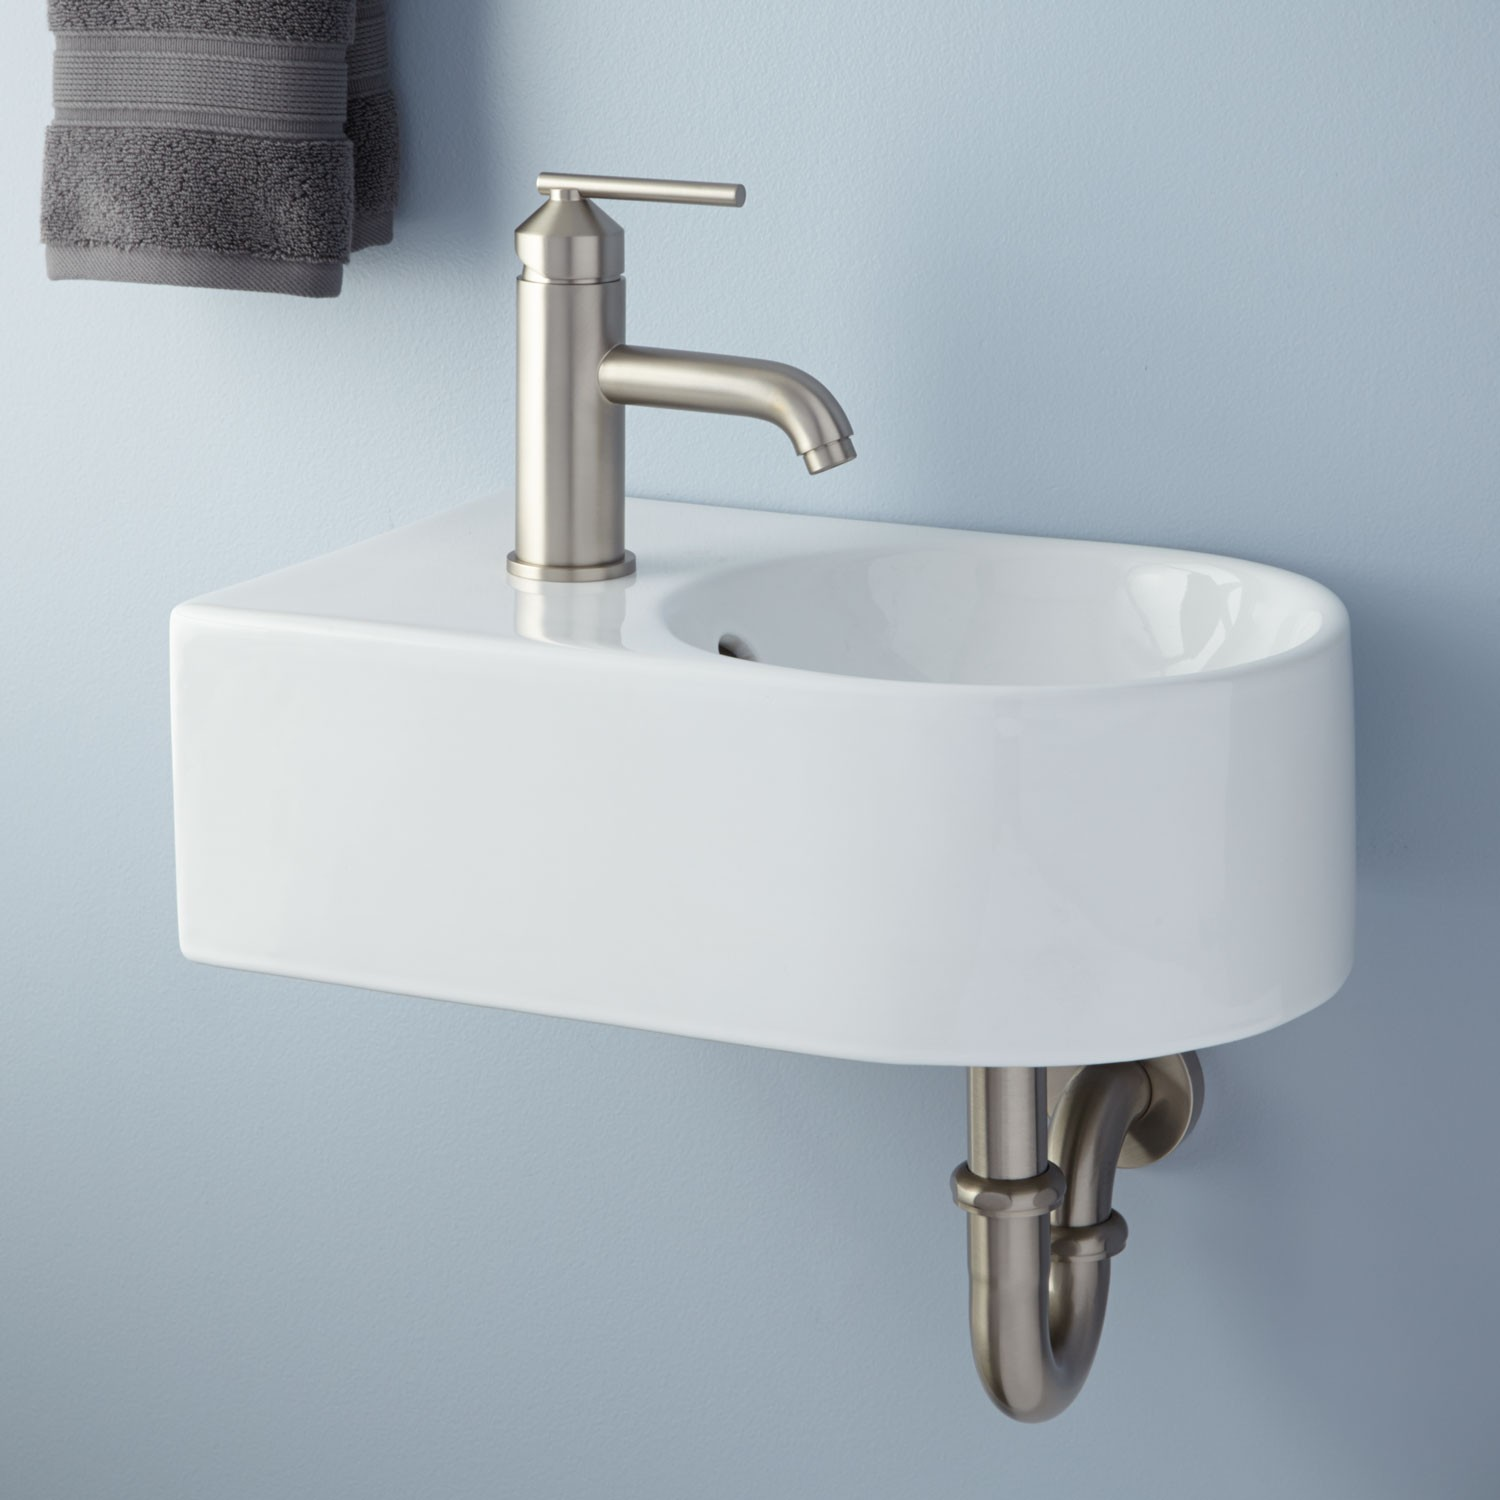 Charmant Small Wall Mounted Sink Idea With Brushed Iron Faucet